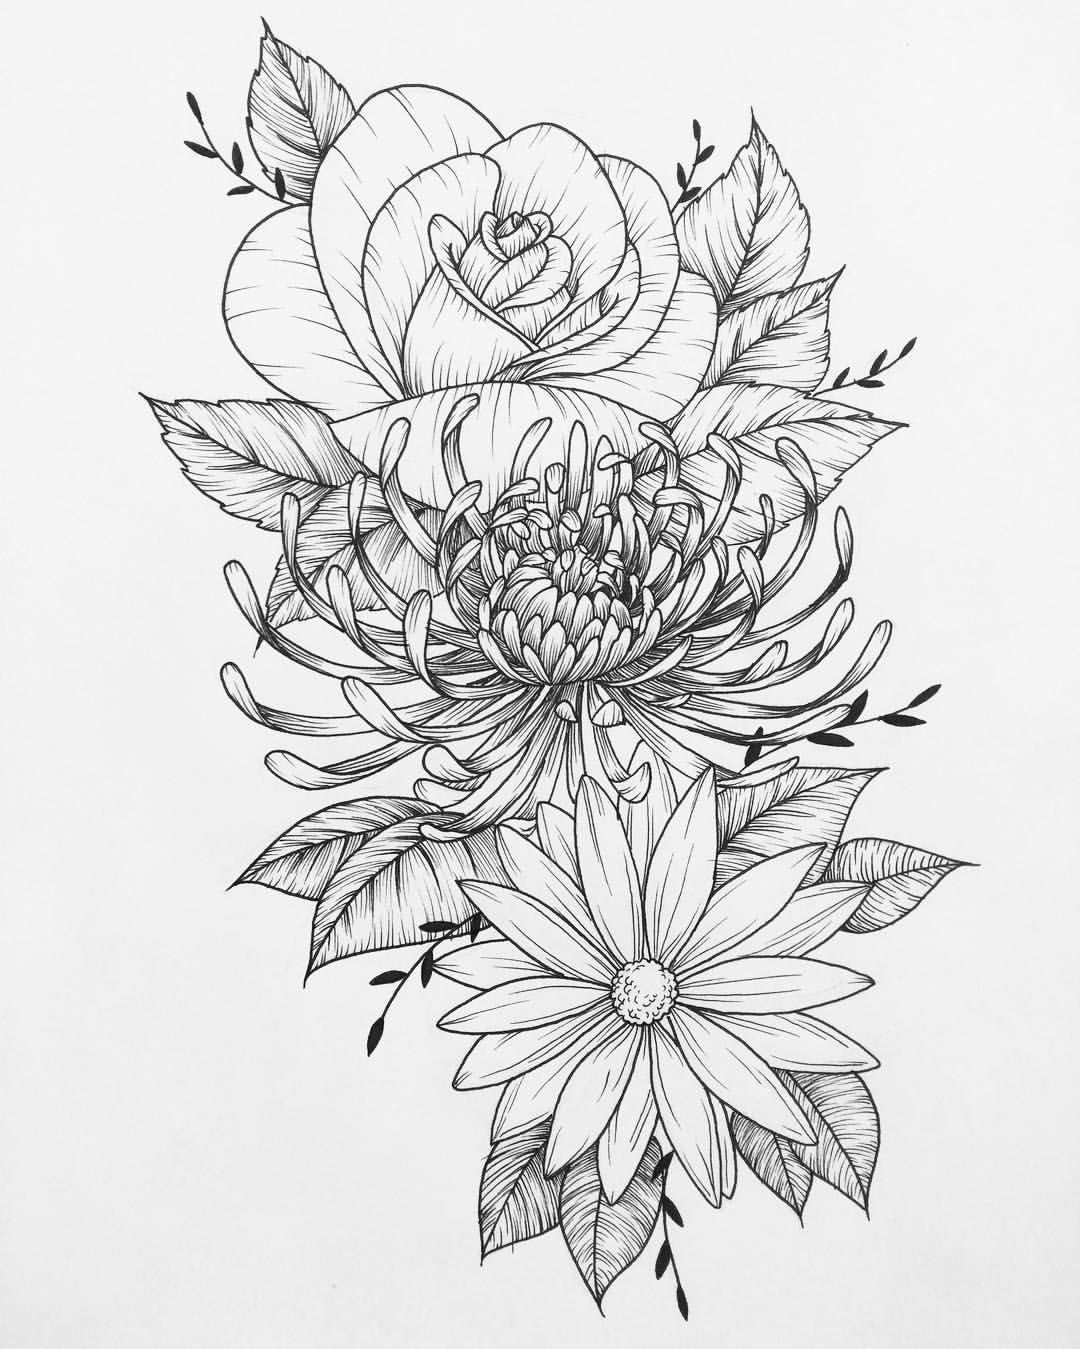 Flower tattoo | COLORING PAGES | Pinterest | Flower tattoos, Tattoo ...